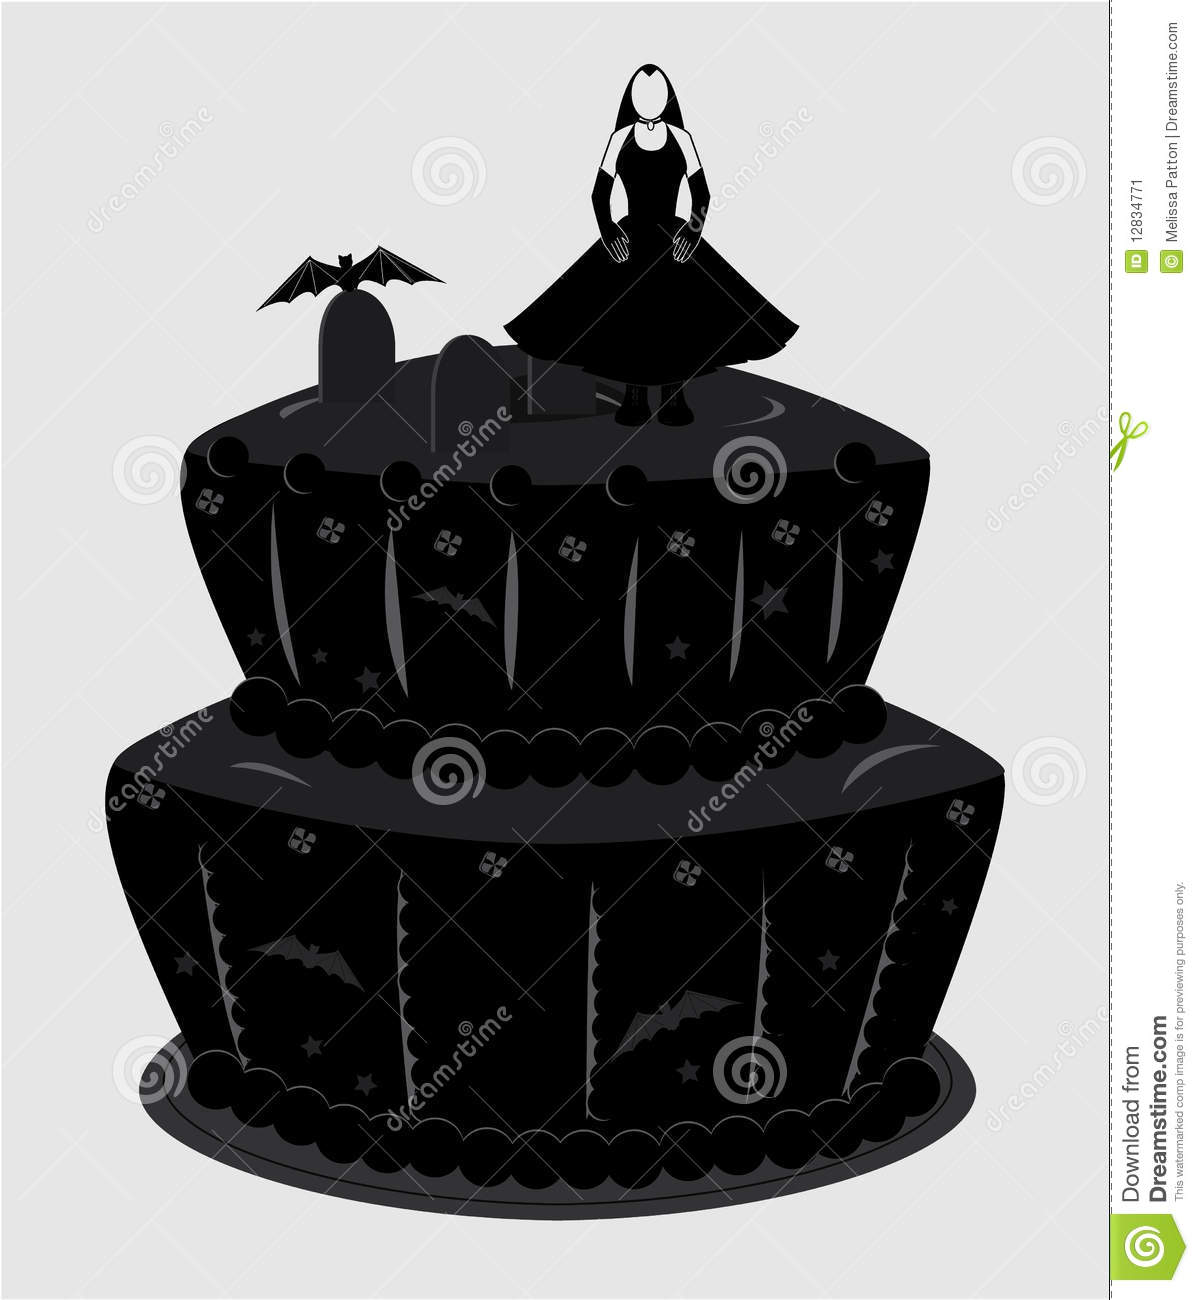 Pleasant Goth Cake Stock Vector Illustration Of Female Decorated 12834771 Funny Birthday Cards Online Inifofree Goldxyz